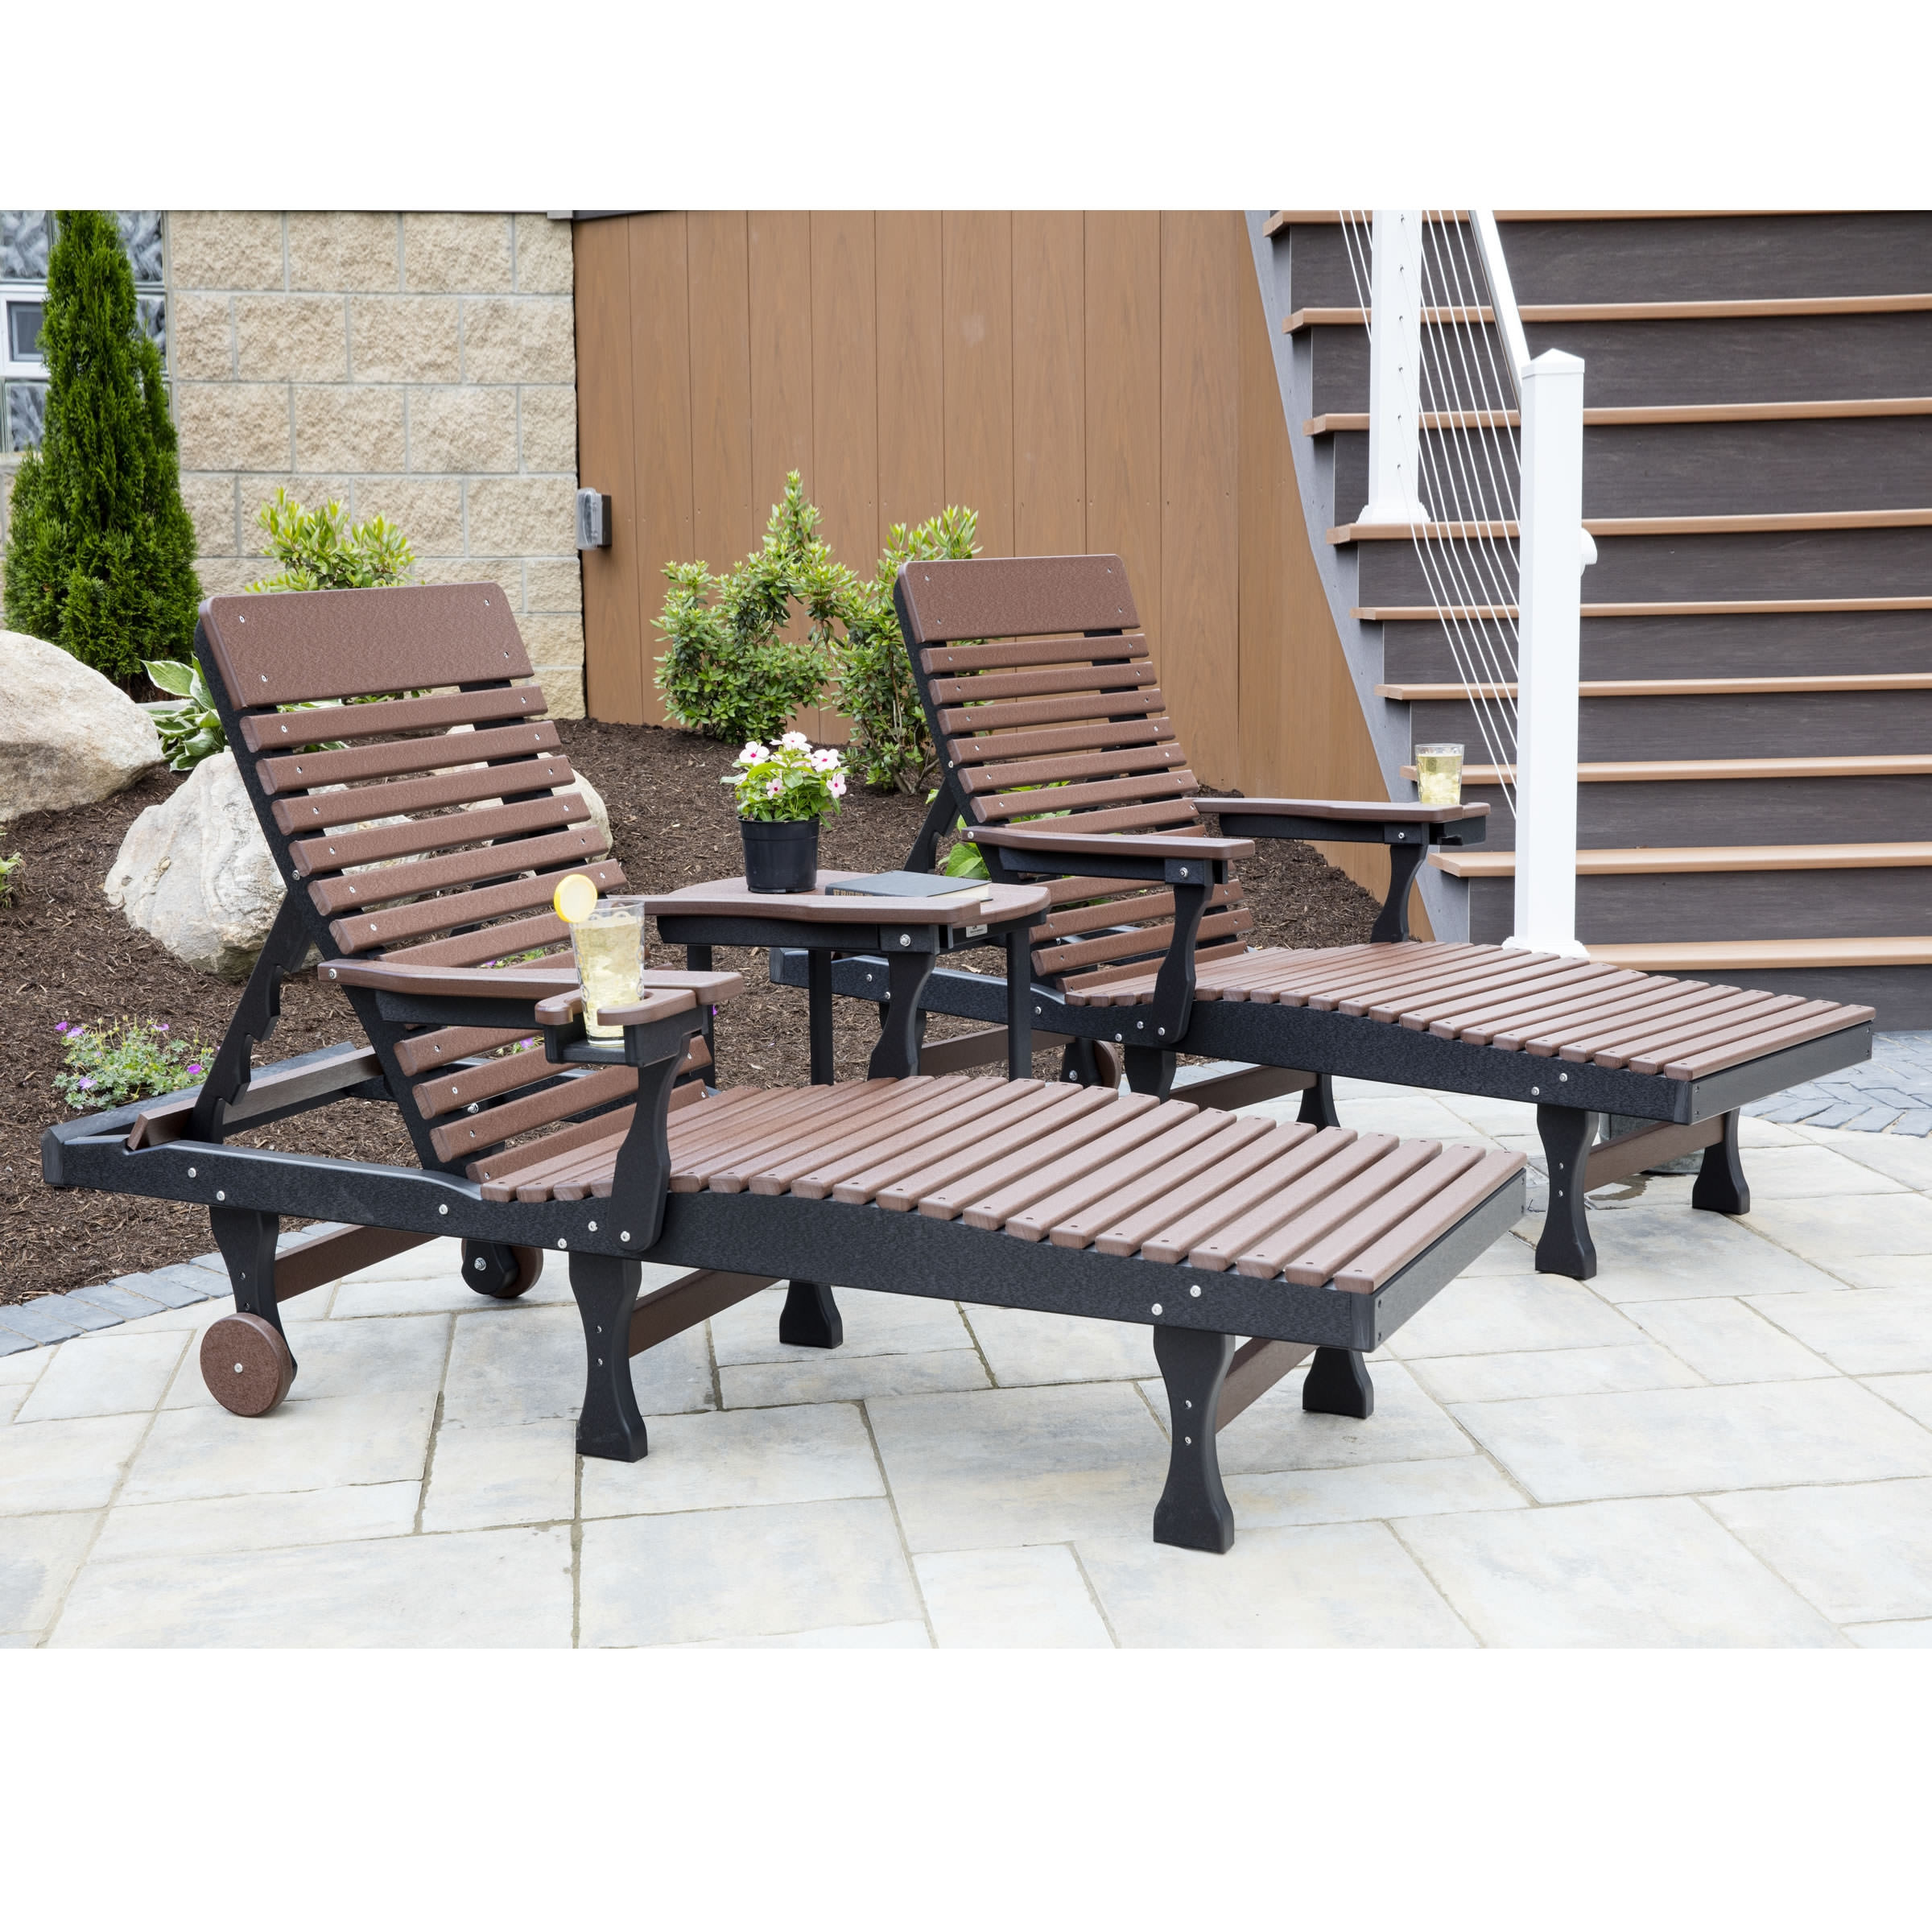 Berlin Gardens Casual-Back Chaise Lounge Seating Set